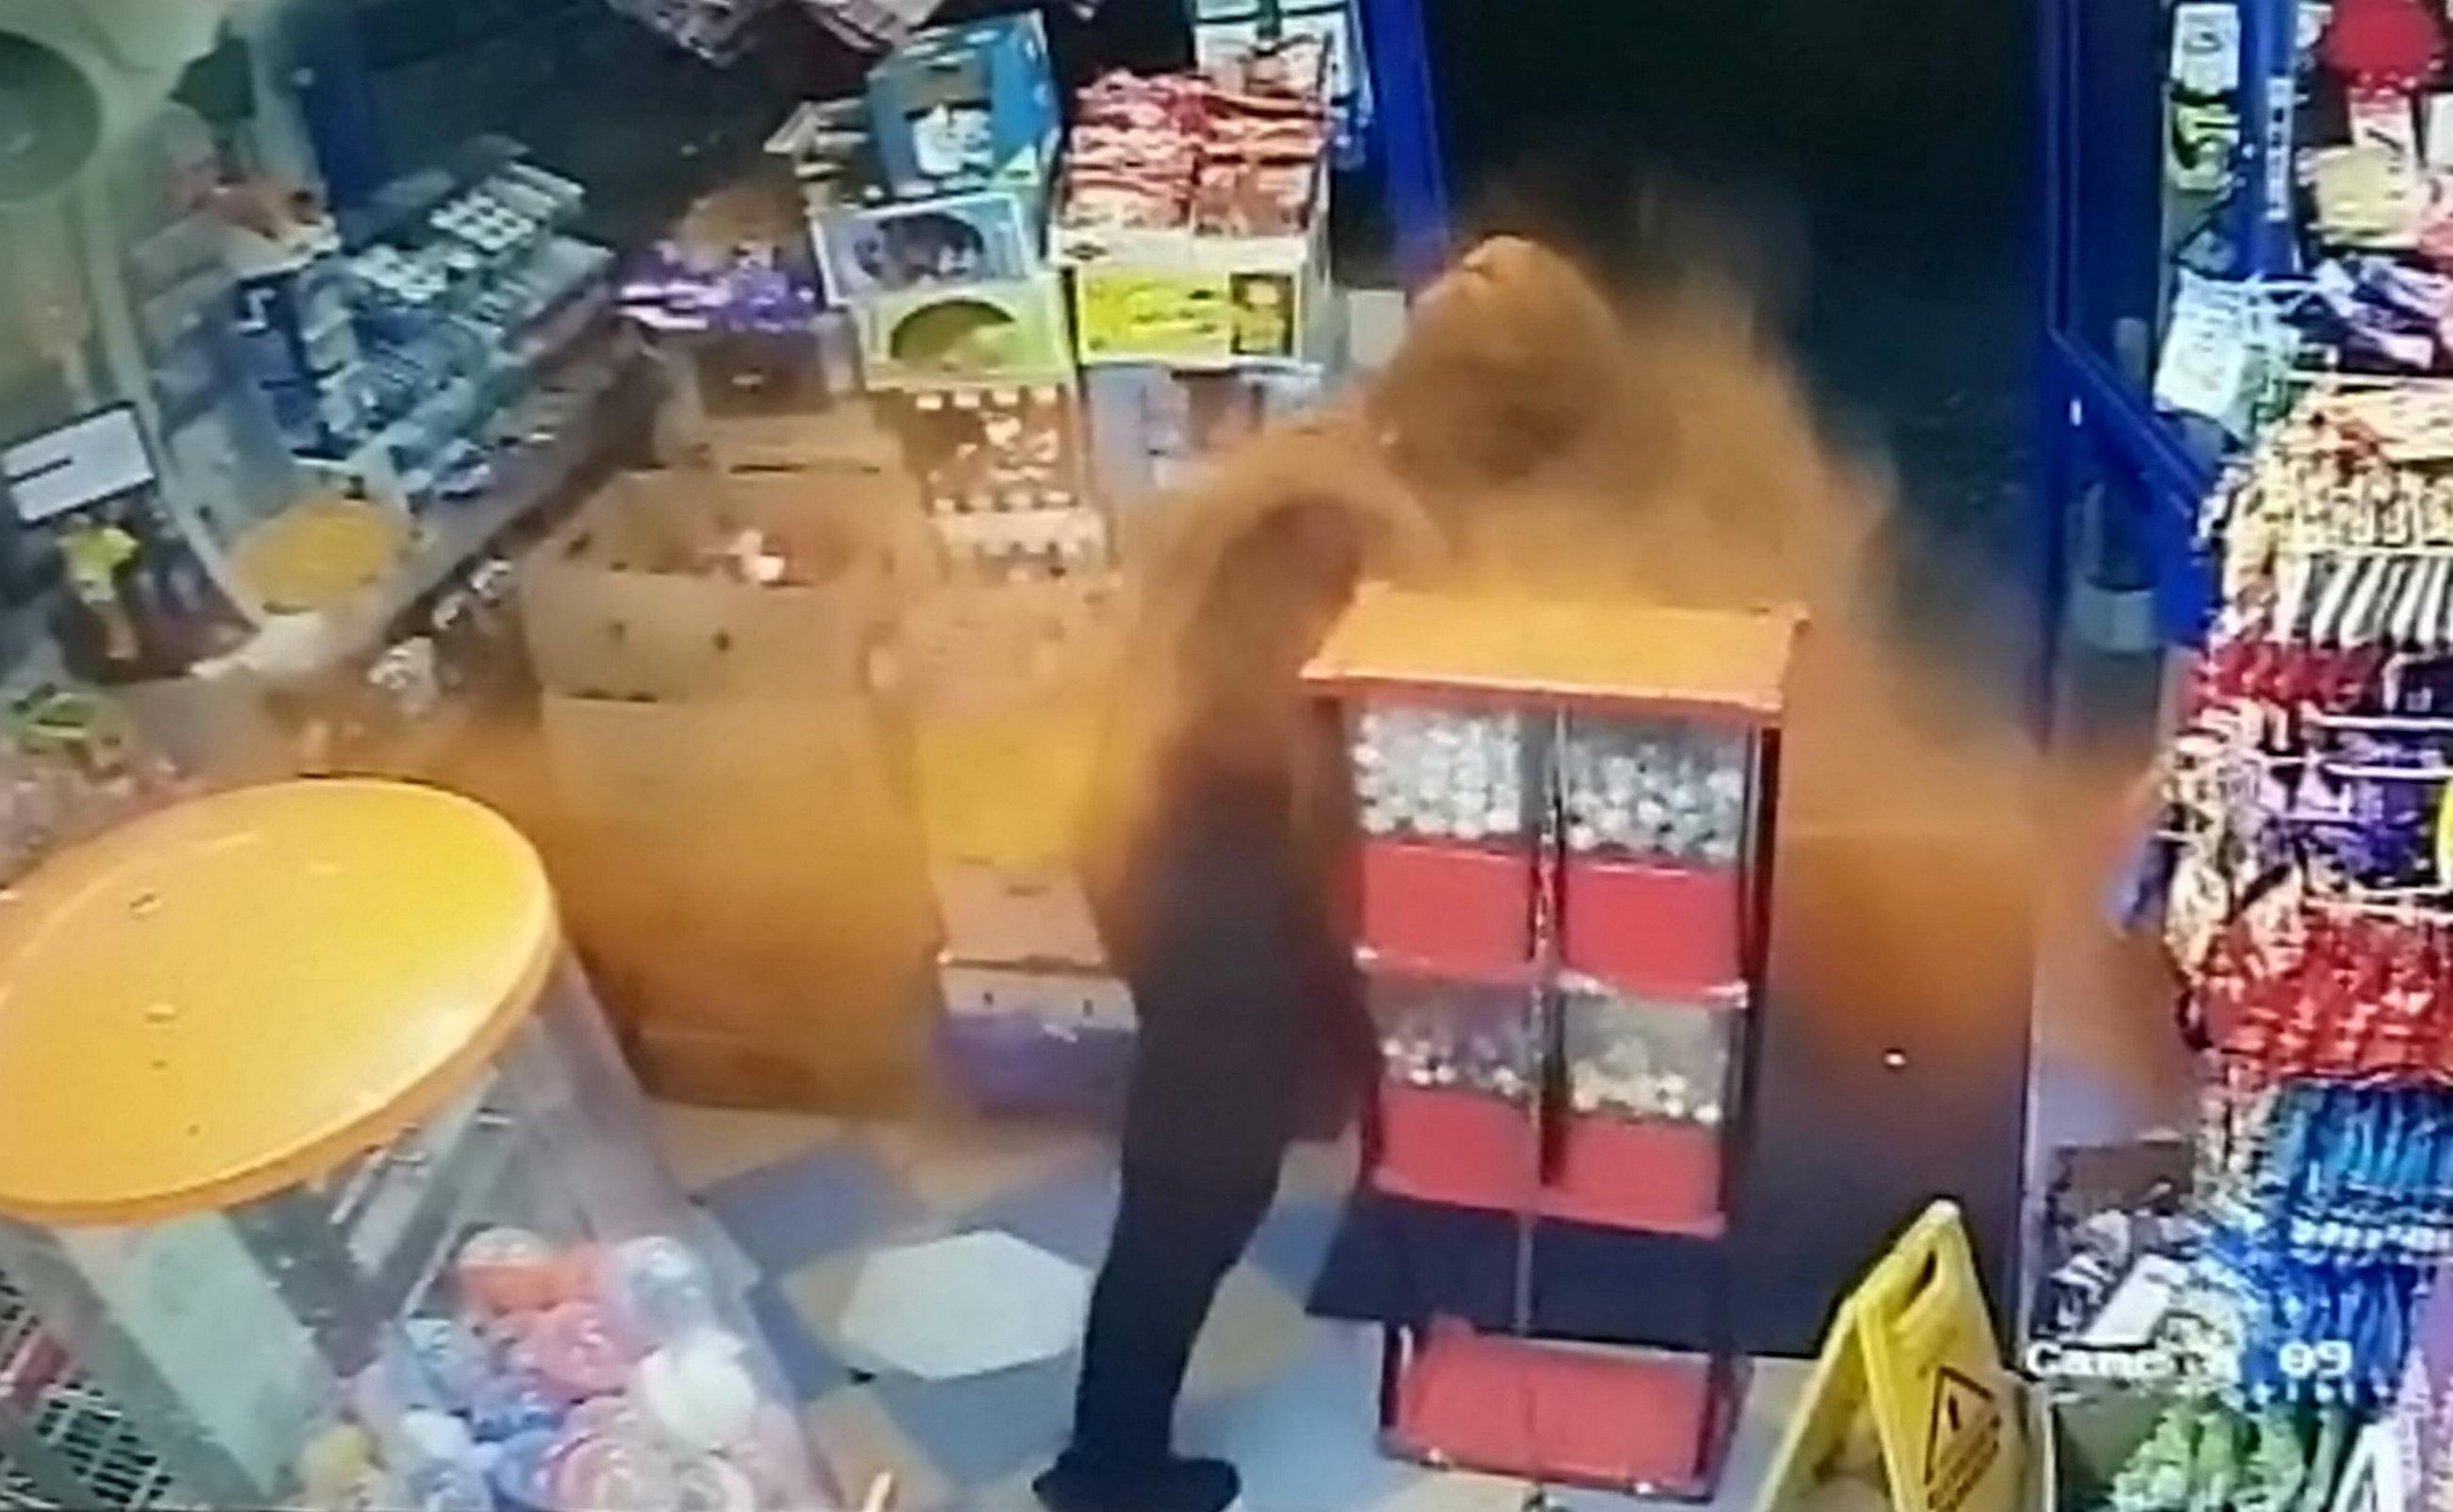 Watch this incredible moment where a brave shop owner lobs chilli powder at a thug (Picture: SWNS)